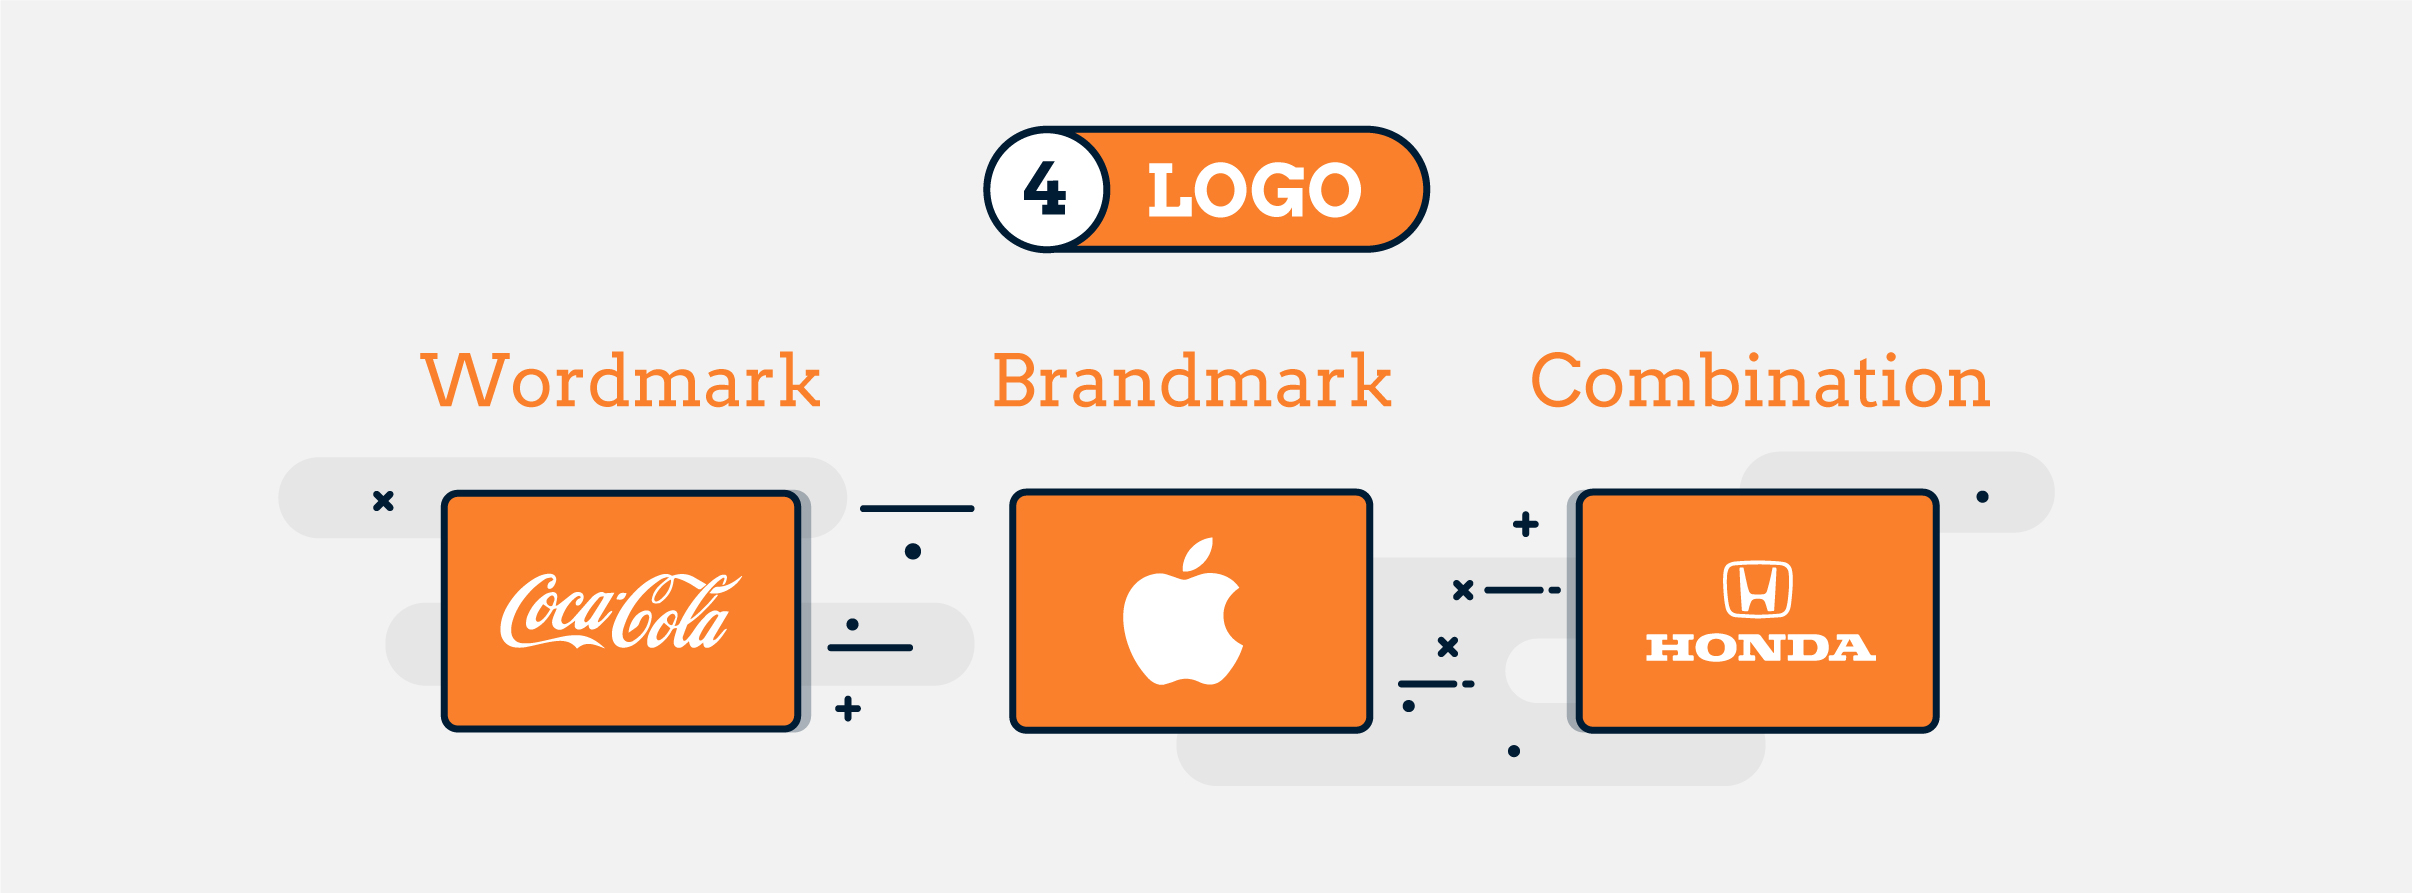 Design terms - logo